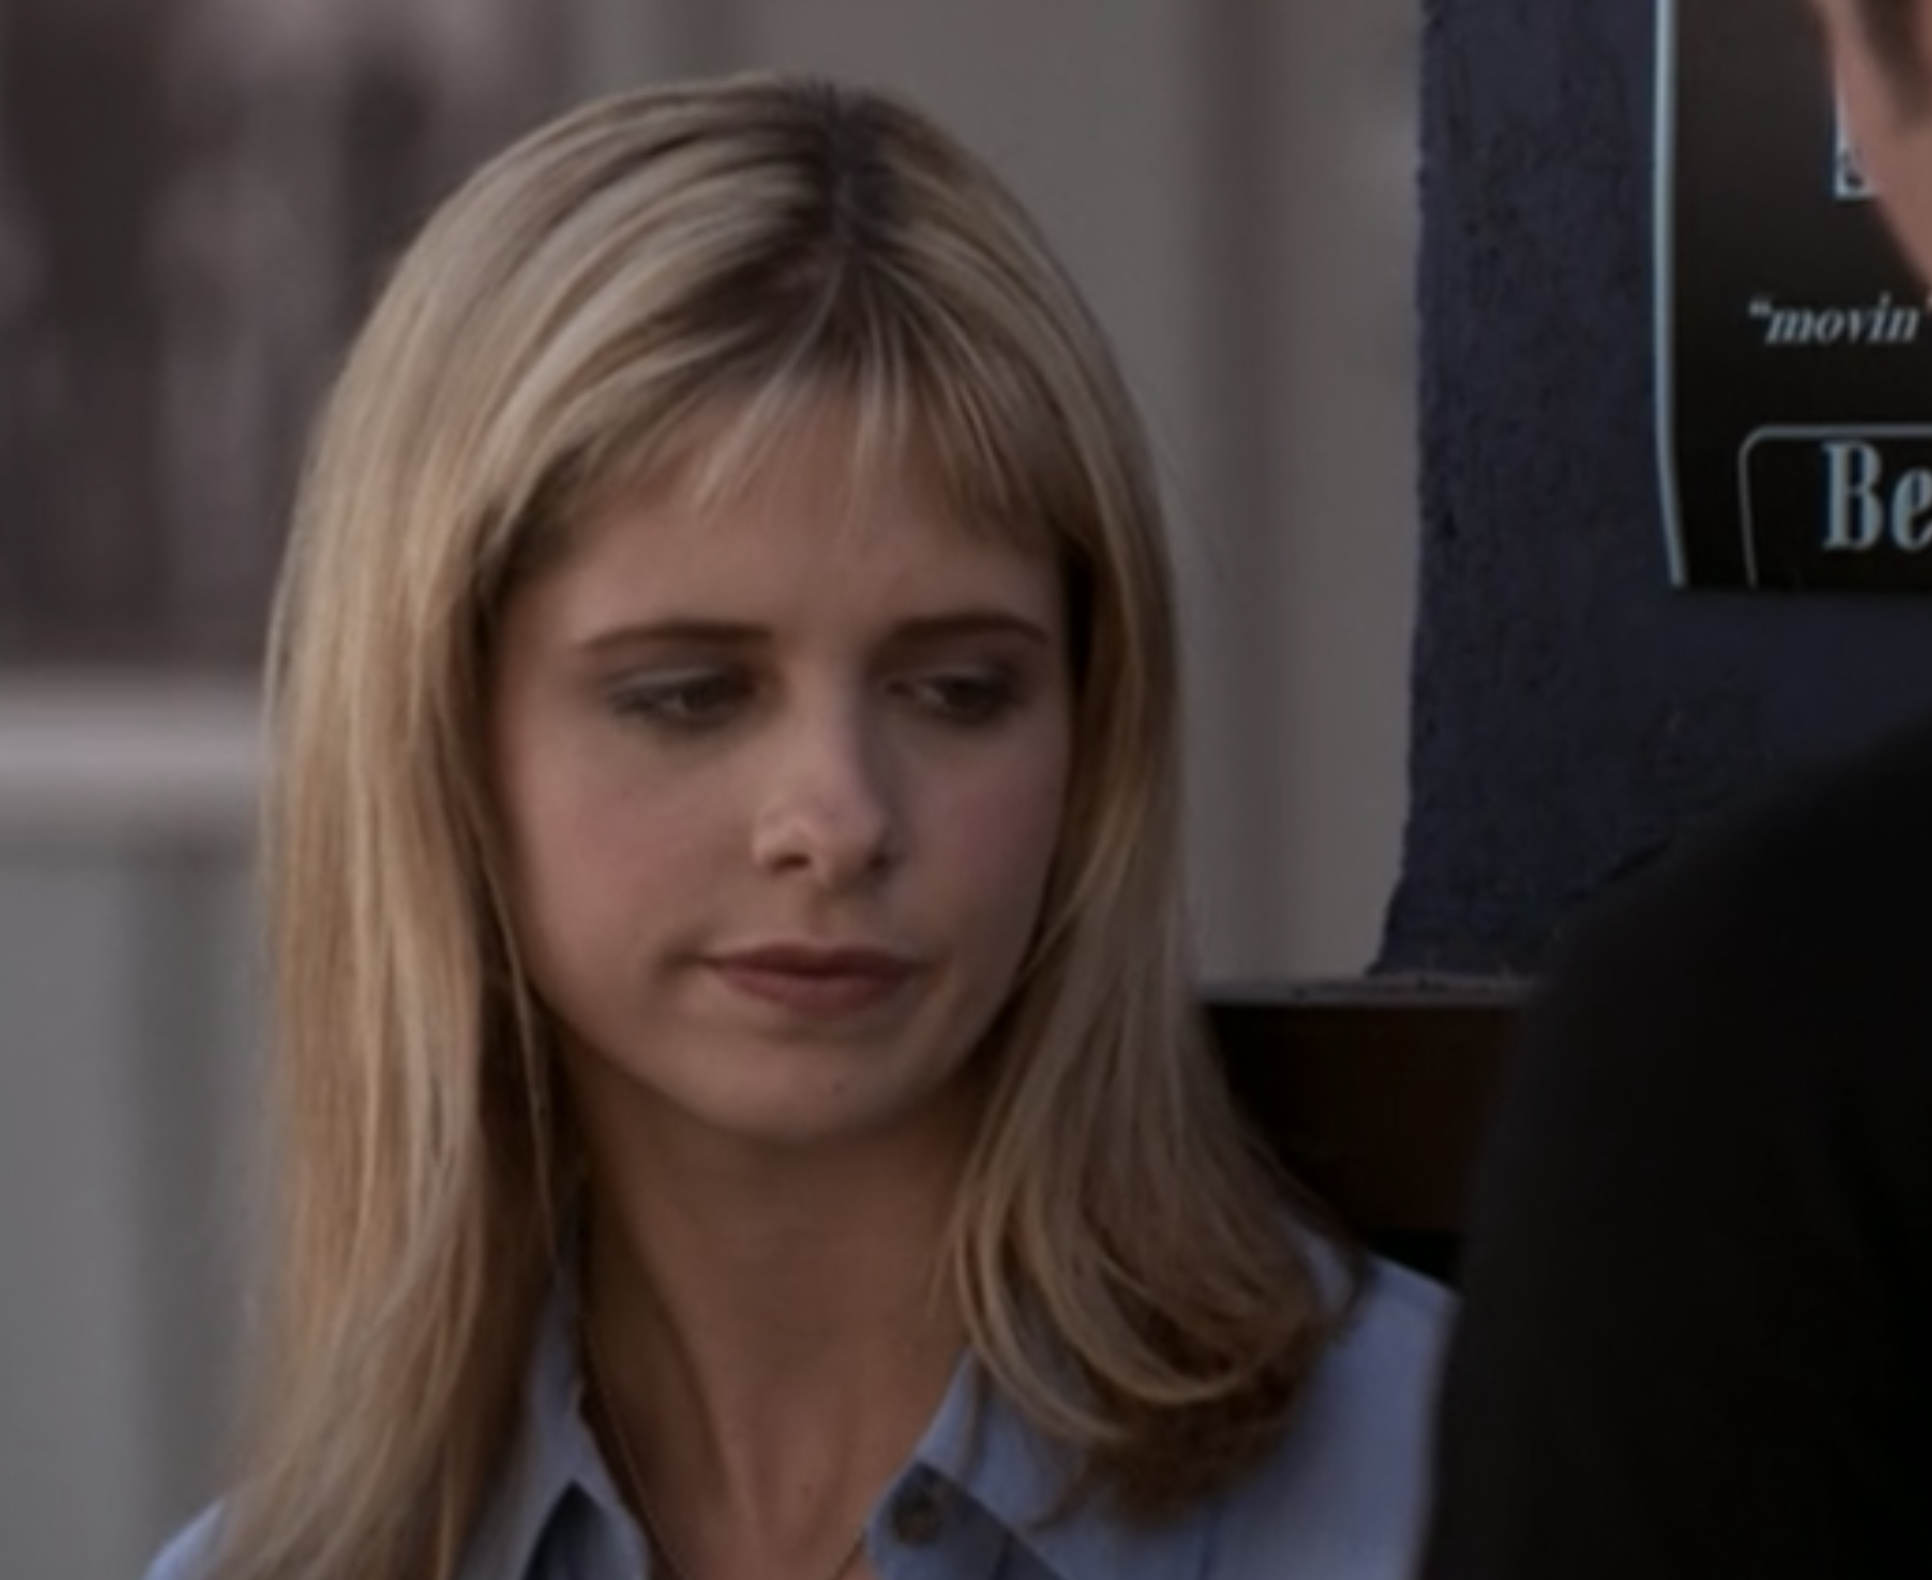 Sarah Michelle Gellar with bangs cut extremely short